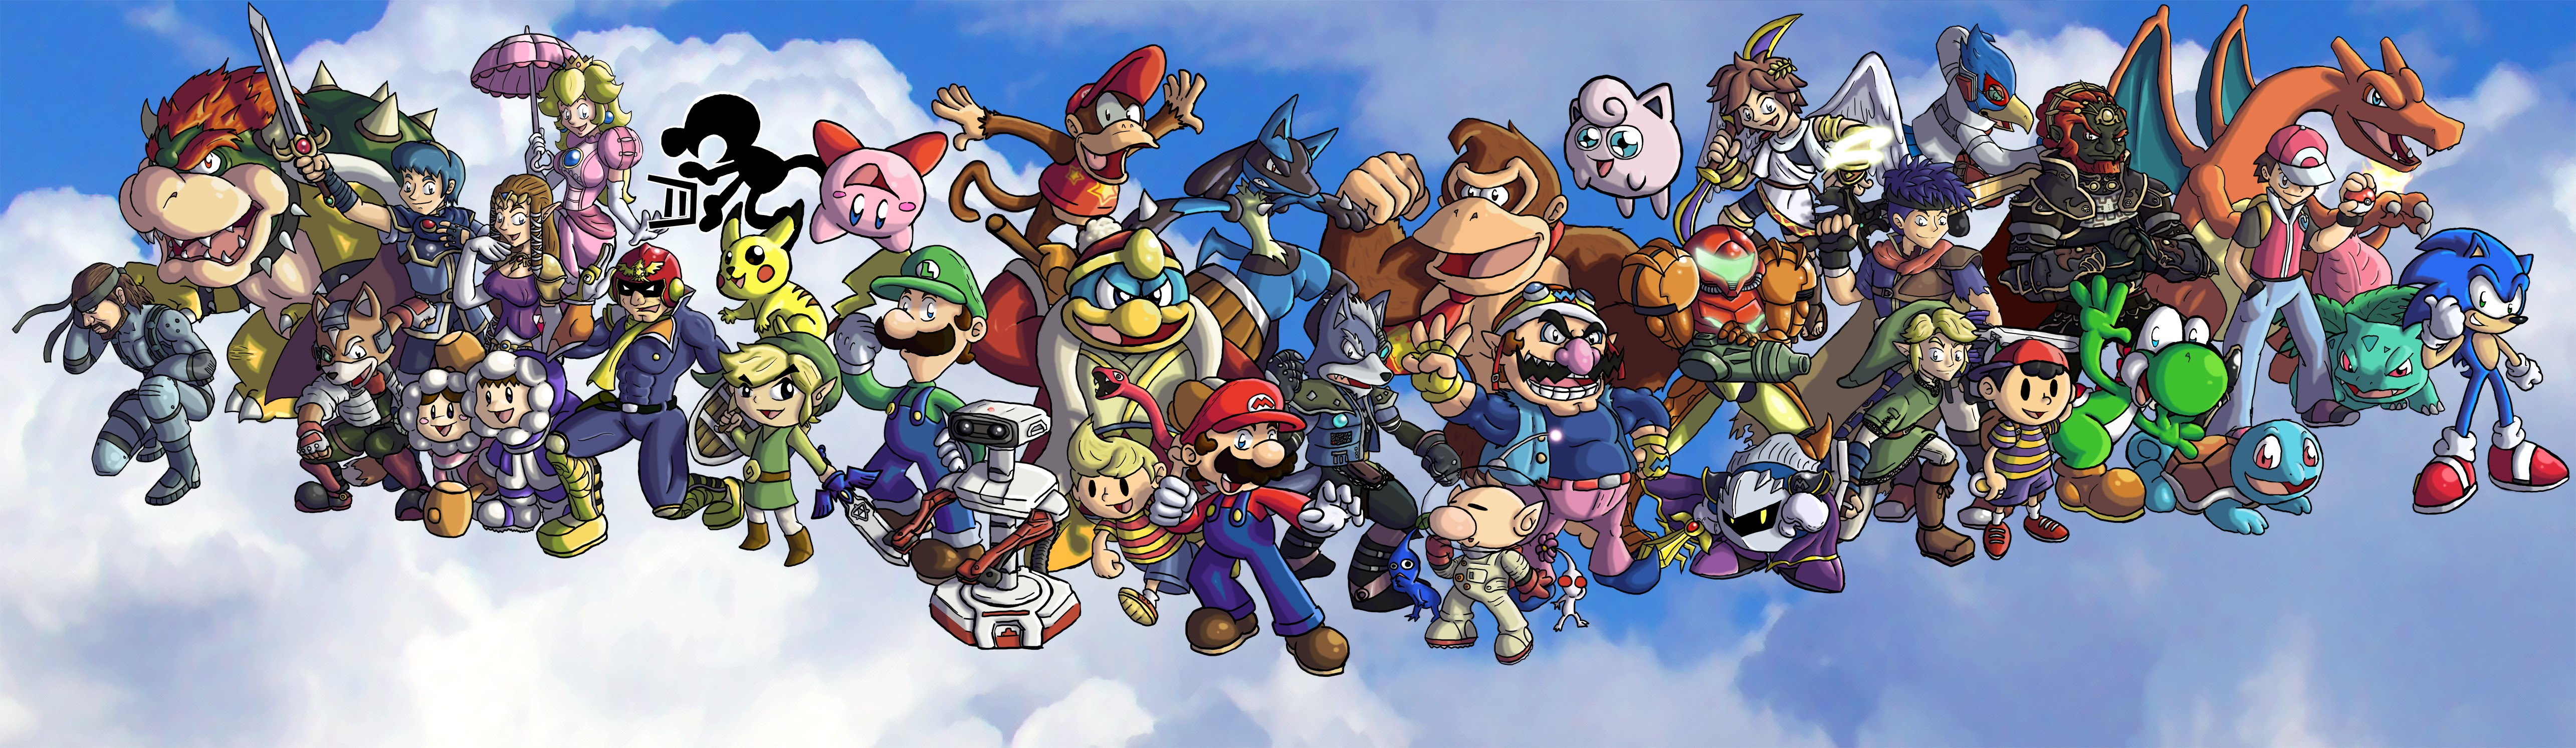 Super Smash Bros Brawl Gamecube Download For Wii